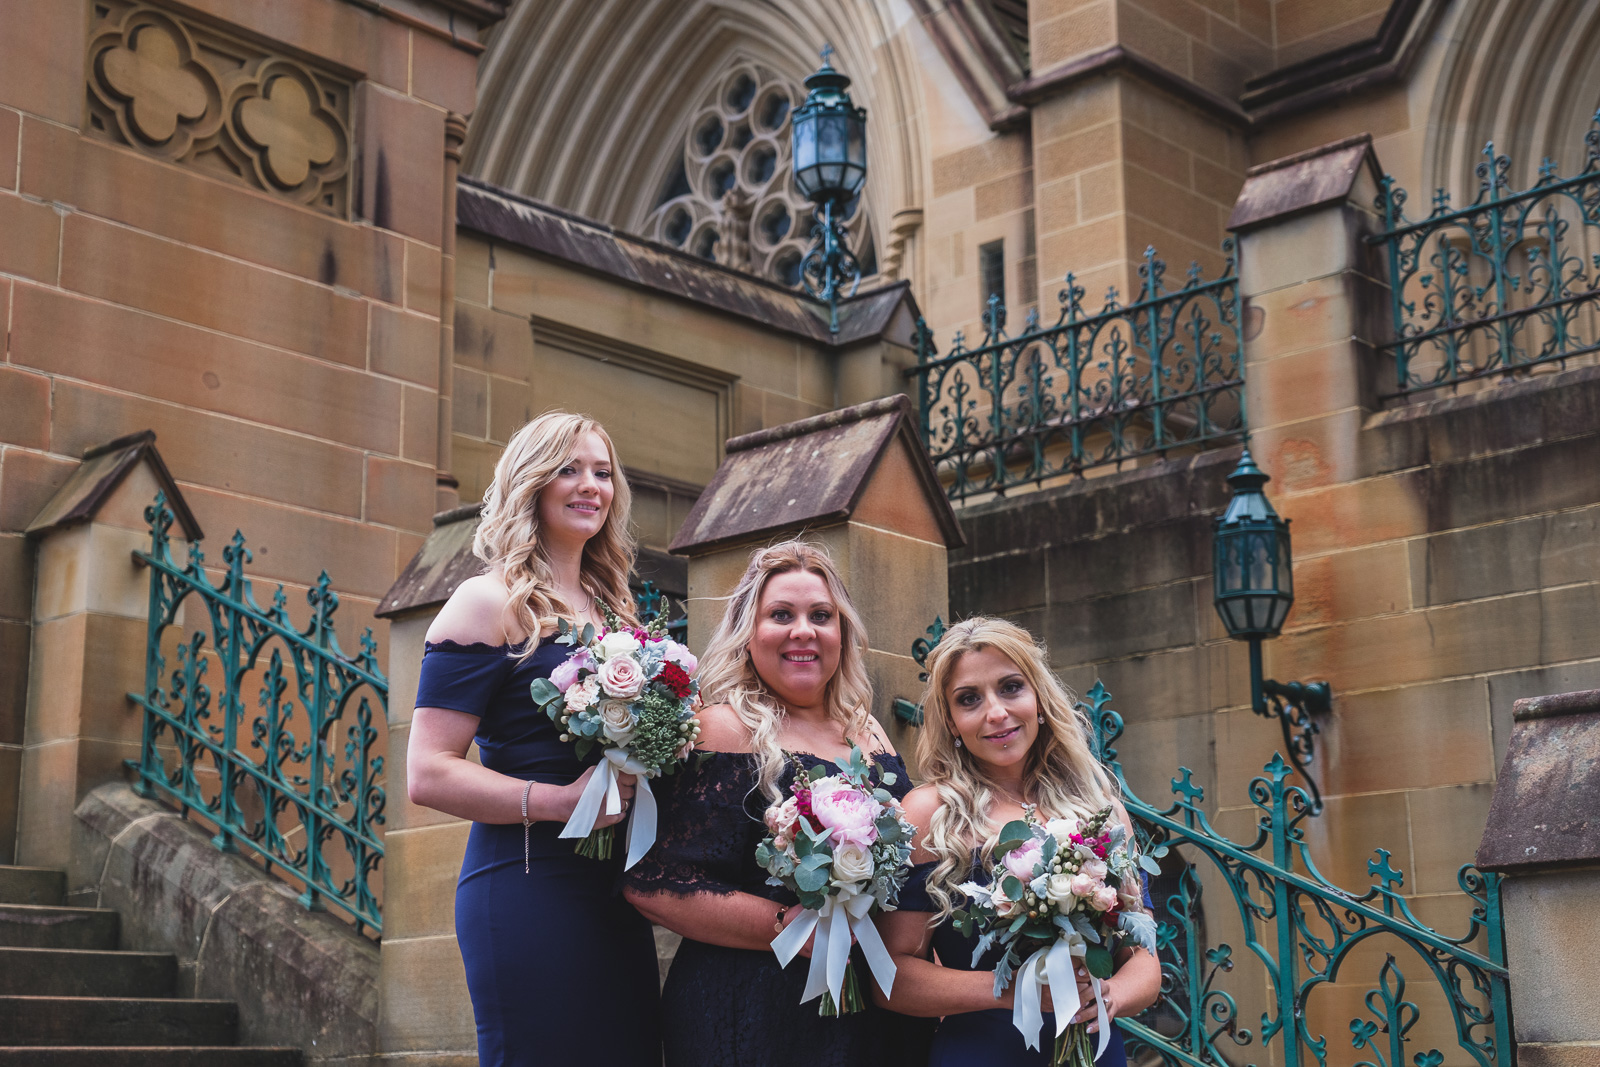 st-marys-cathedral-crypt-wedding